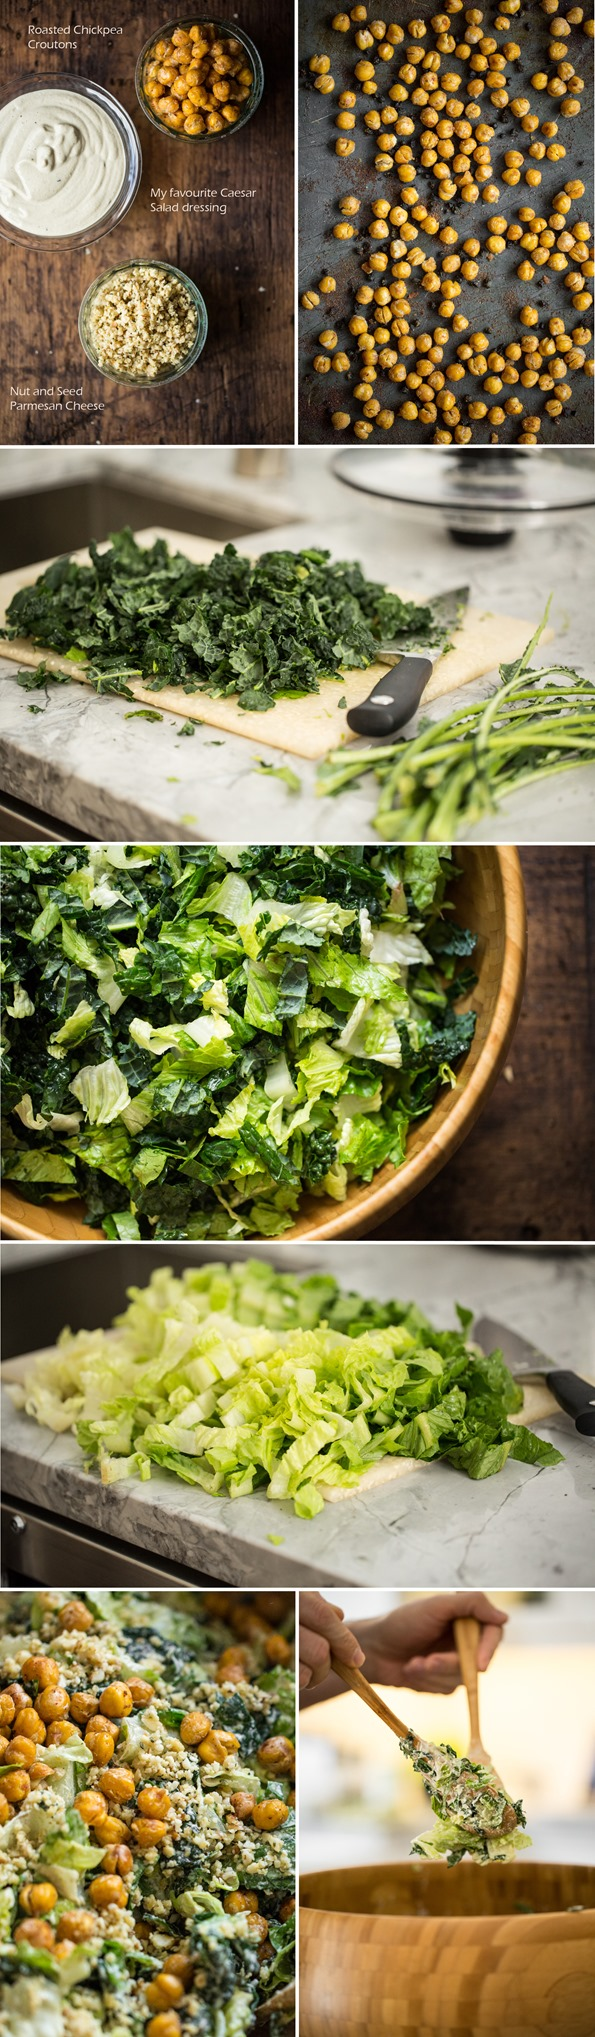 vegancaesarsaladrecipe   Crowd Pleasing Vegan Caesar Salad